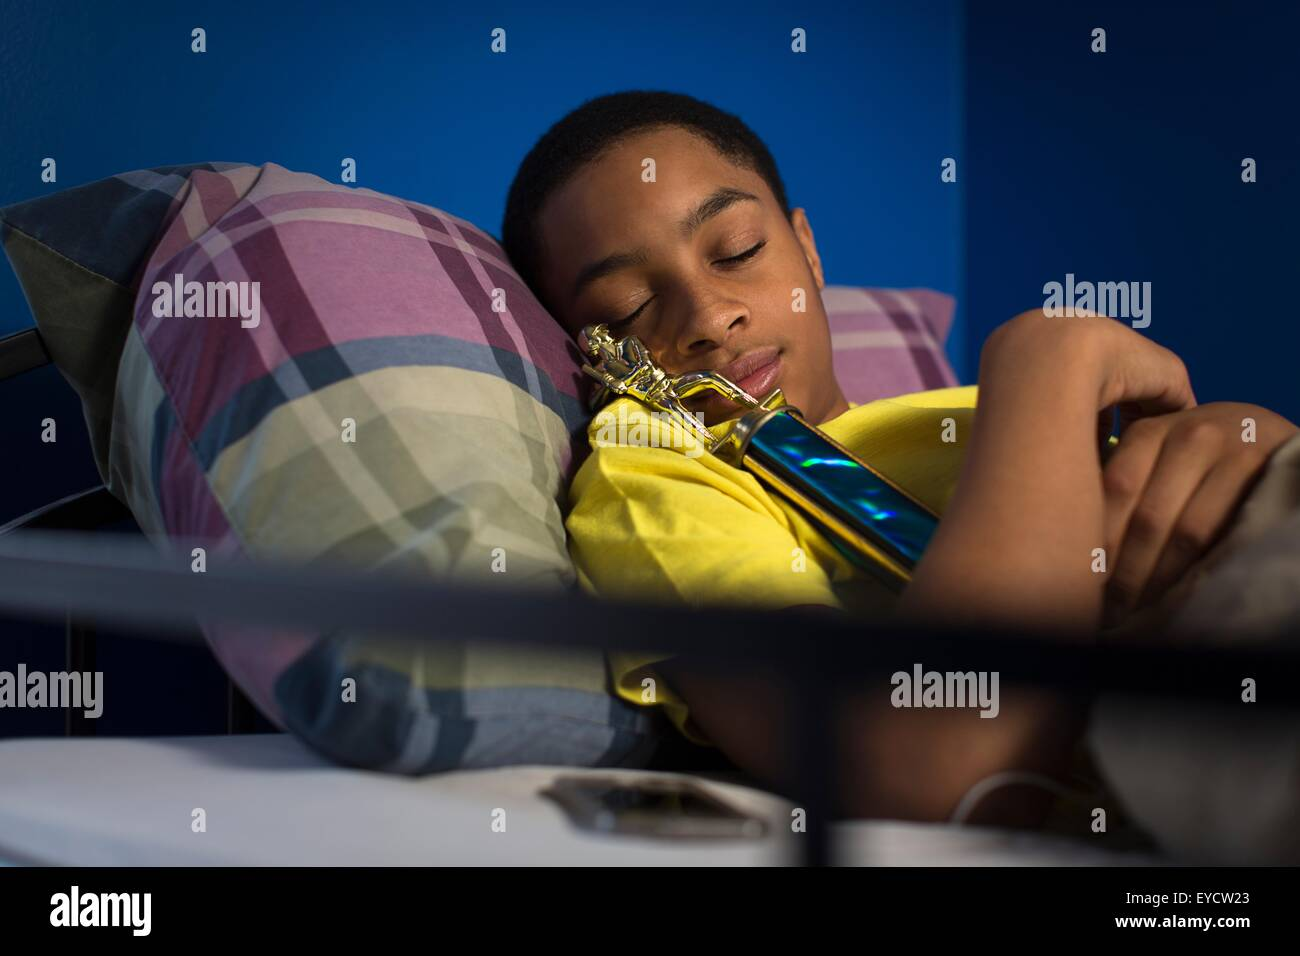 Teenage boy asleep in bunkbed hugging trophy - Stock Image